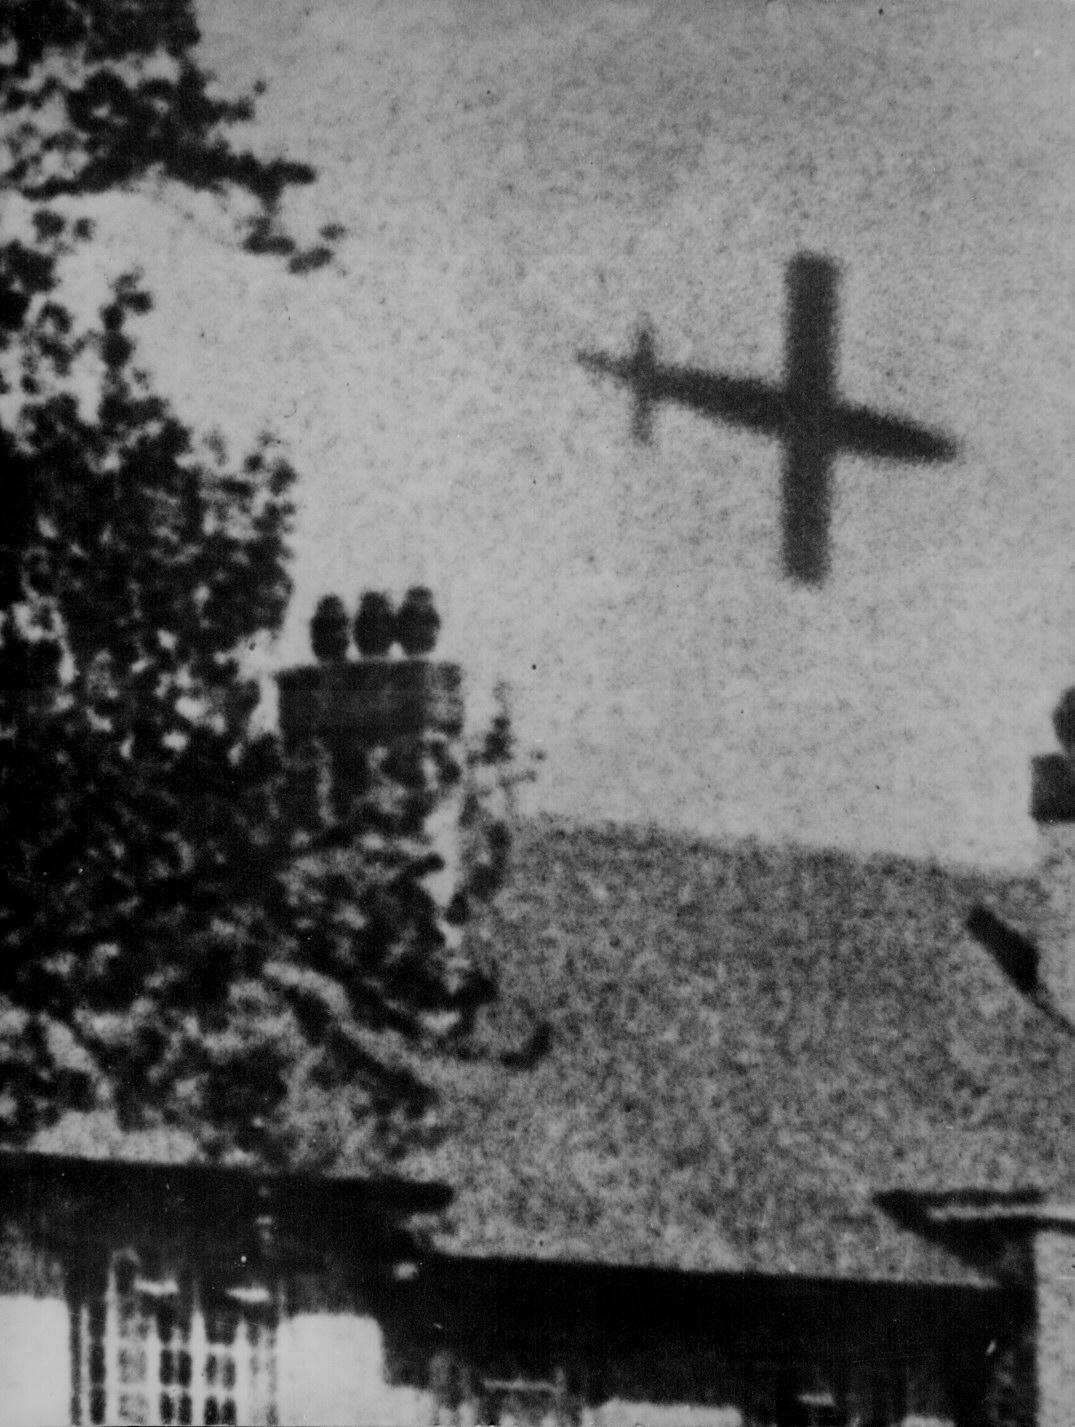 world war two in britain essay The second world war was a defining event in canadian history, transforming   king himself had no doubt that in a great war involving britain,.